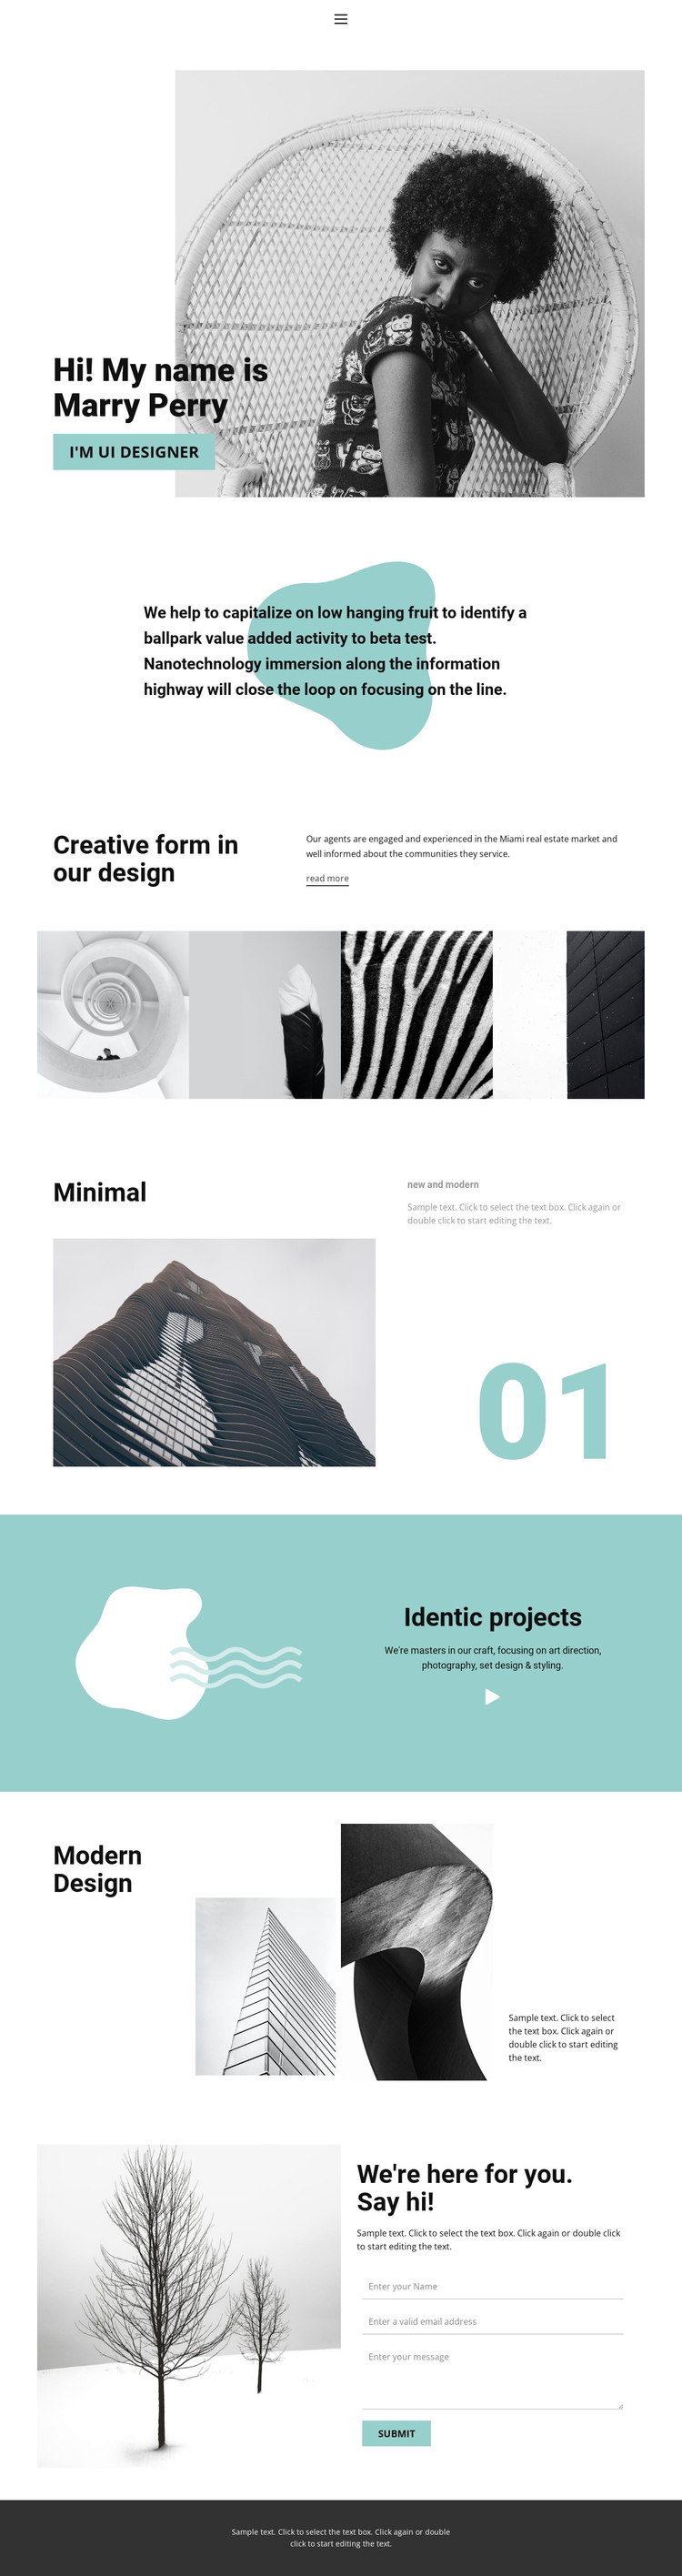 Web design from our studio One Page Template